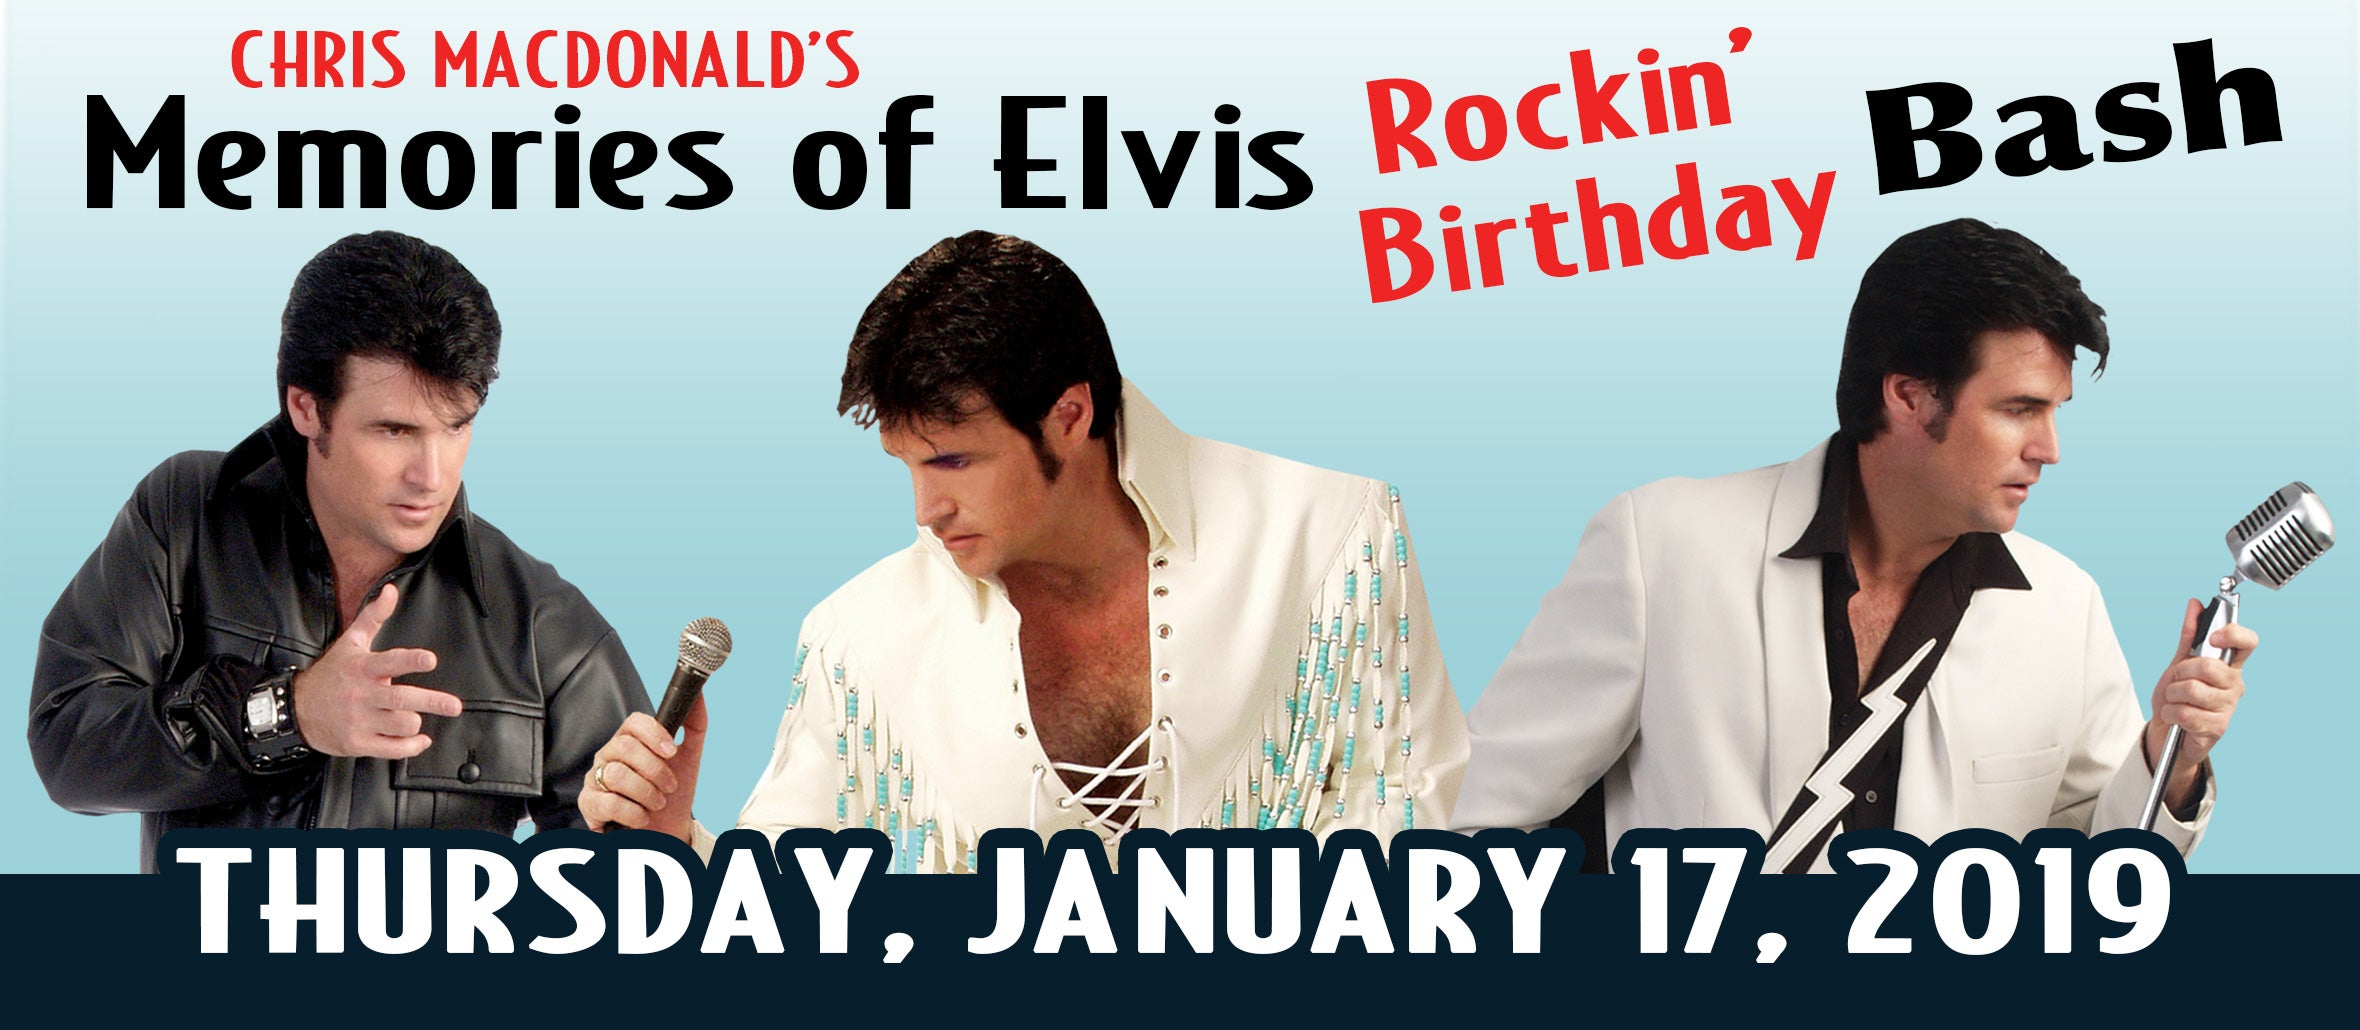 Chris MacDonald's Memories of Elvis Rockin' Birthday Bash